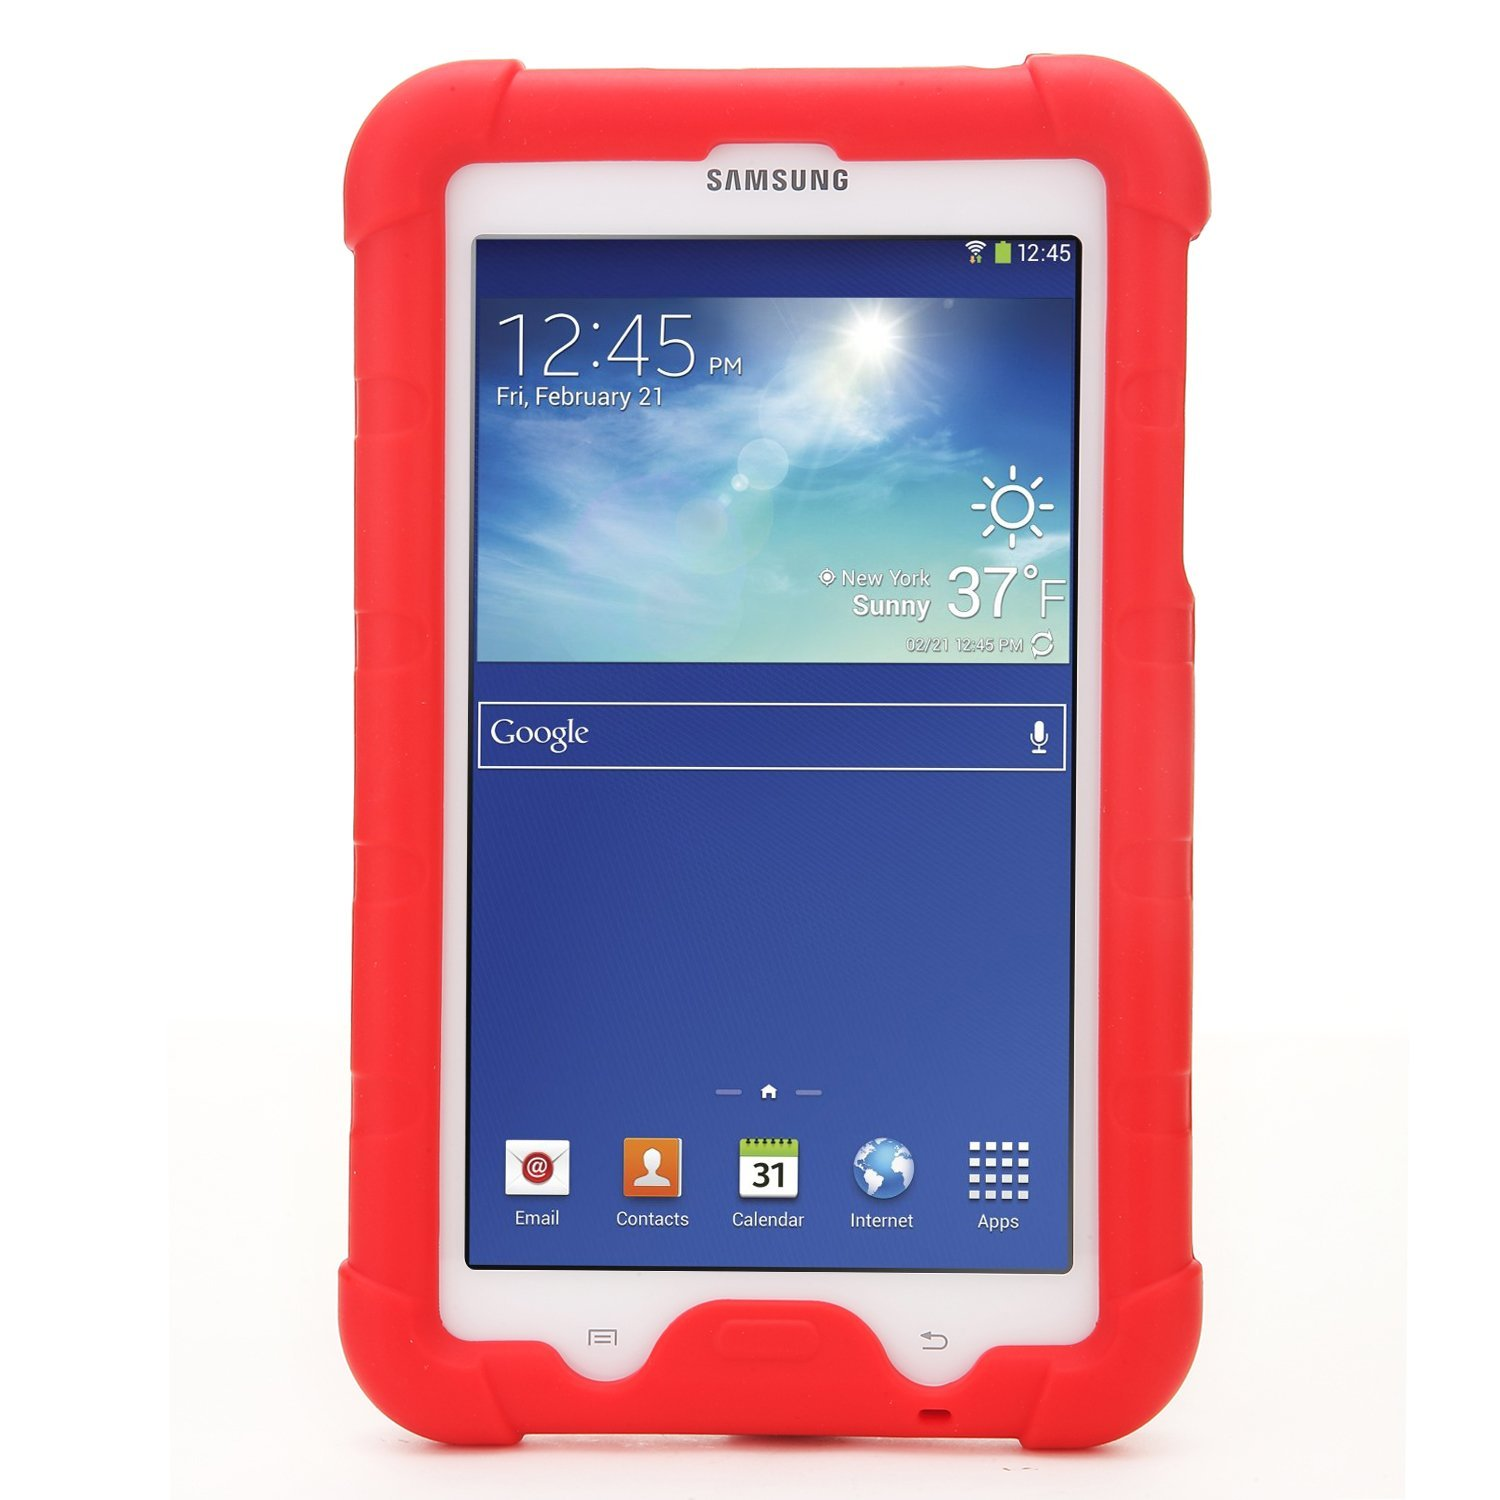 Silicone Case For Samsung Galaxy Tab 3 Lite 7.0 (2014) SM-T110/T111 and Galaxy Tab 4 E Lite 7.0 (2016) SM-T113/T116 Tablet Cover 2017 чехол it baggage for samsung galaxy tab 3 lite 7 0 sm t110 111 иск